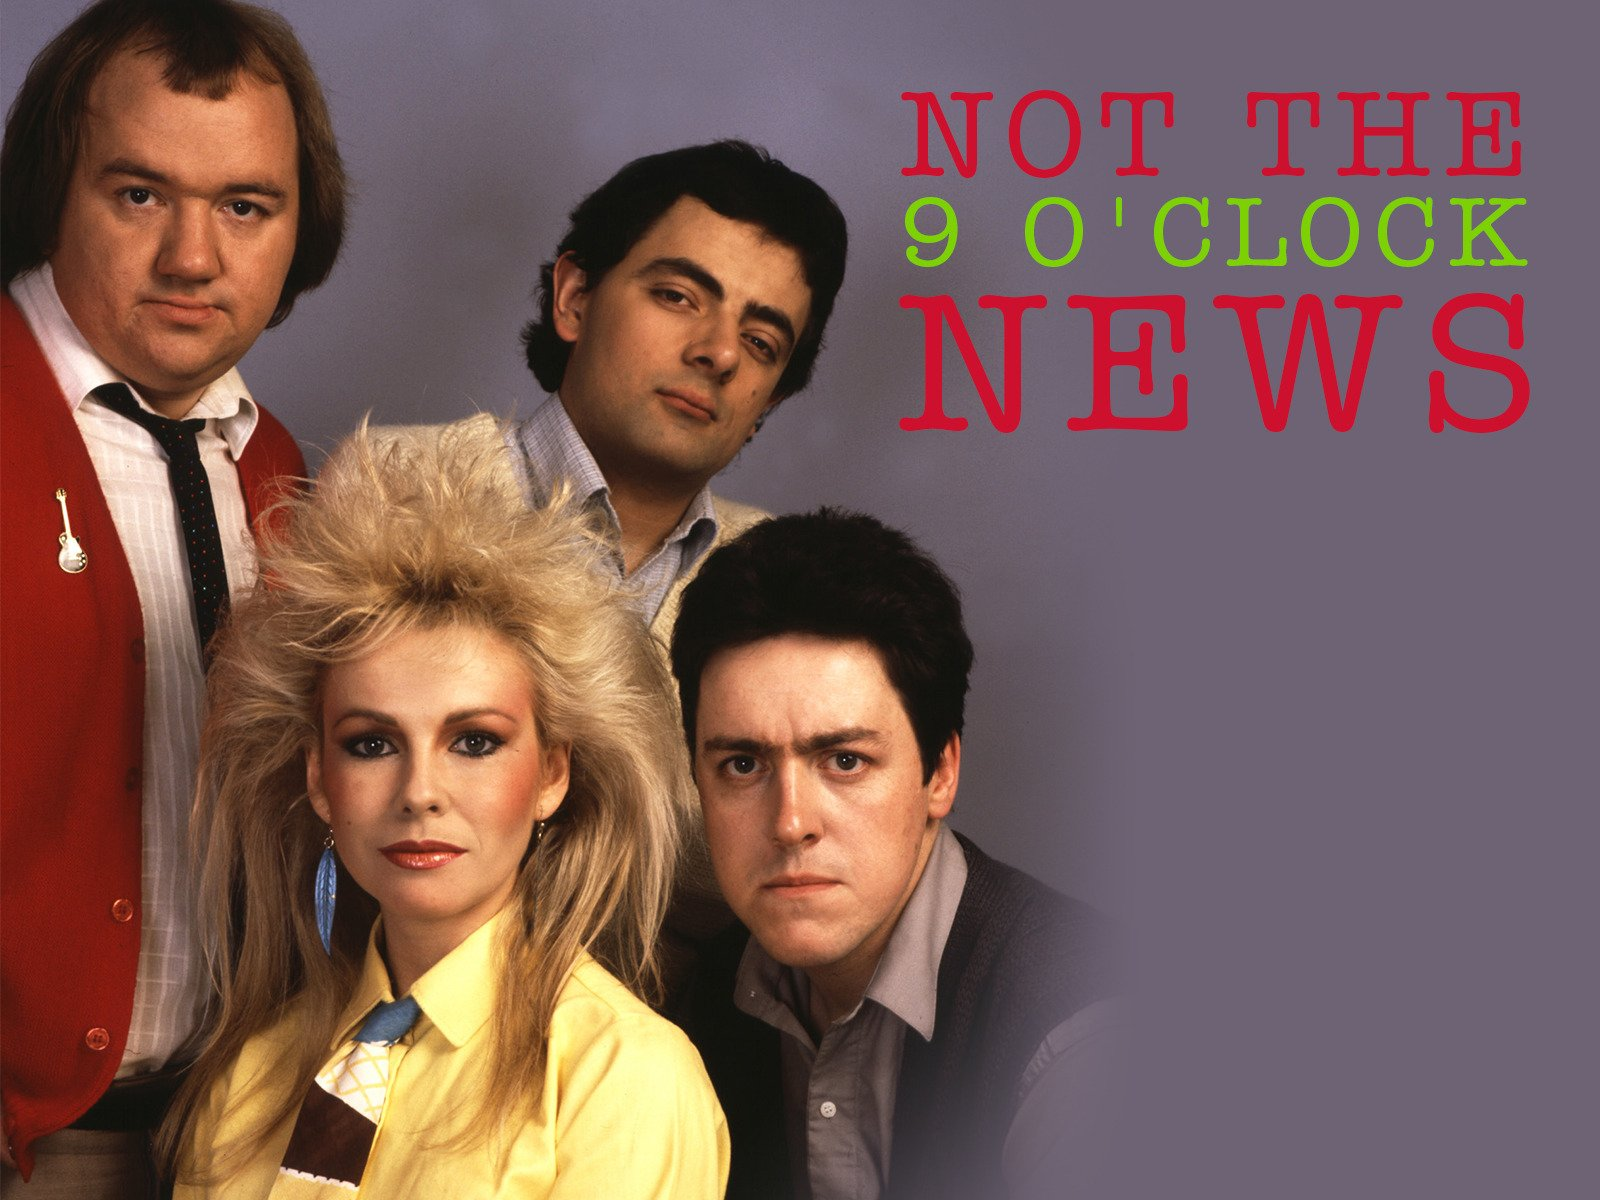 71QFrct1P4L. RI 12 Classic Comedy Shows From When We Grew Up - Which Was Your Favourite?